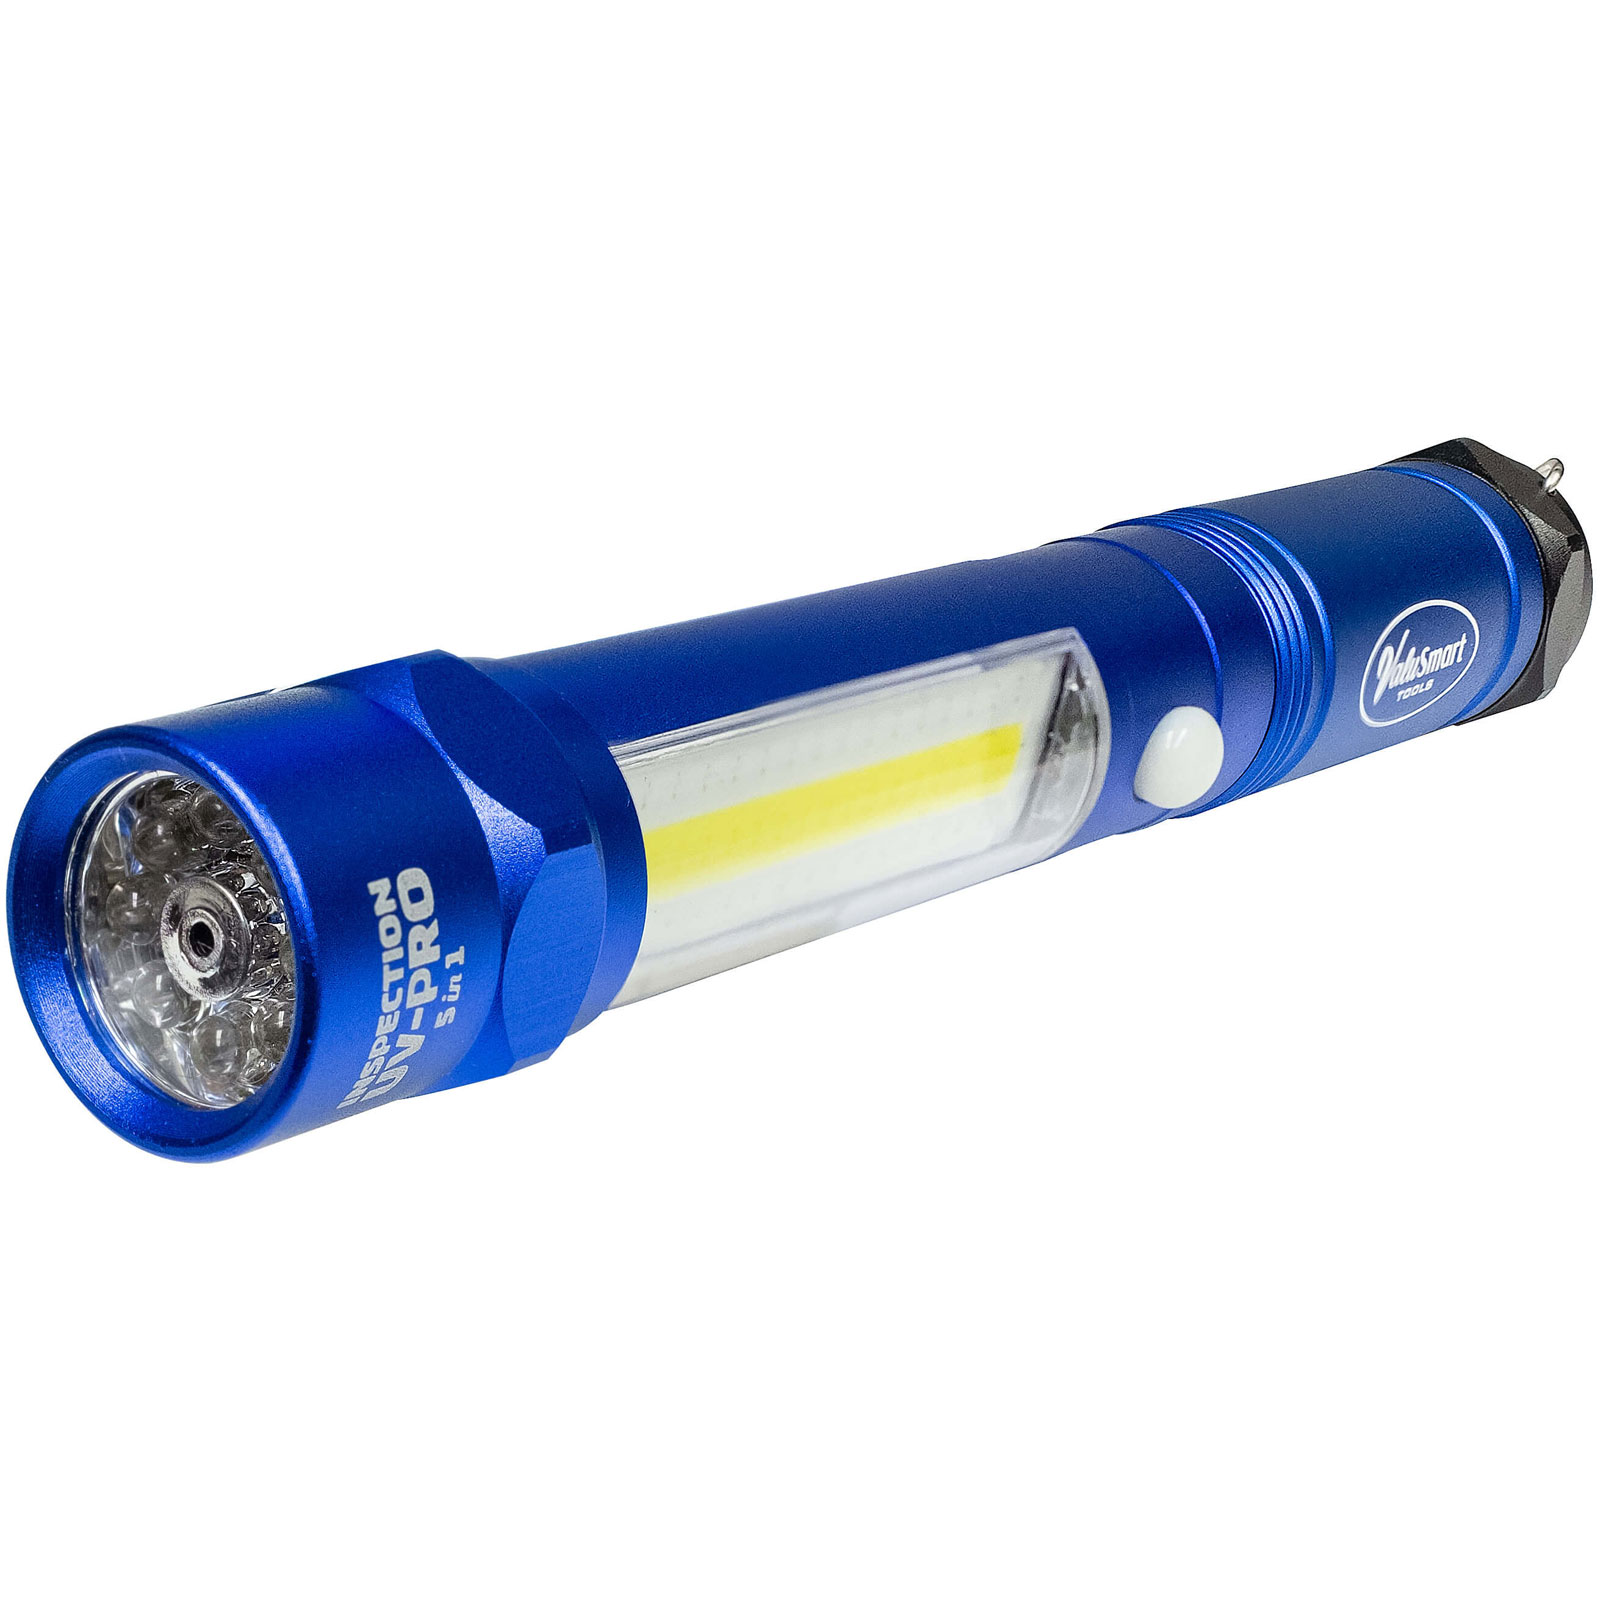 ValuSmart 5 in 1 UV Ultimate Flashlight